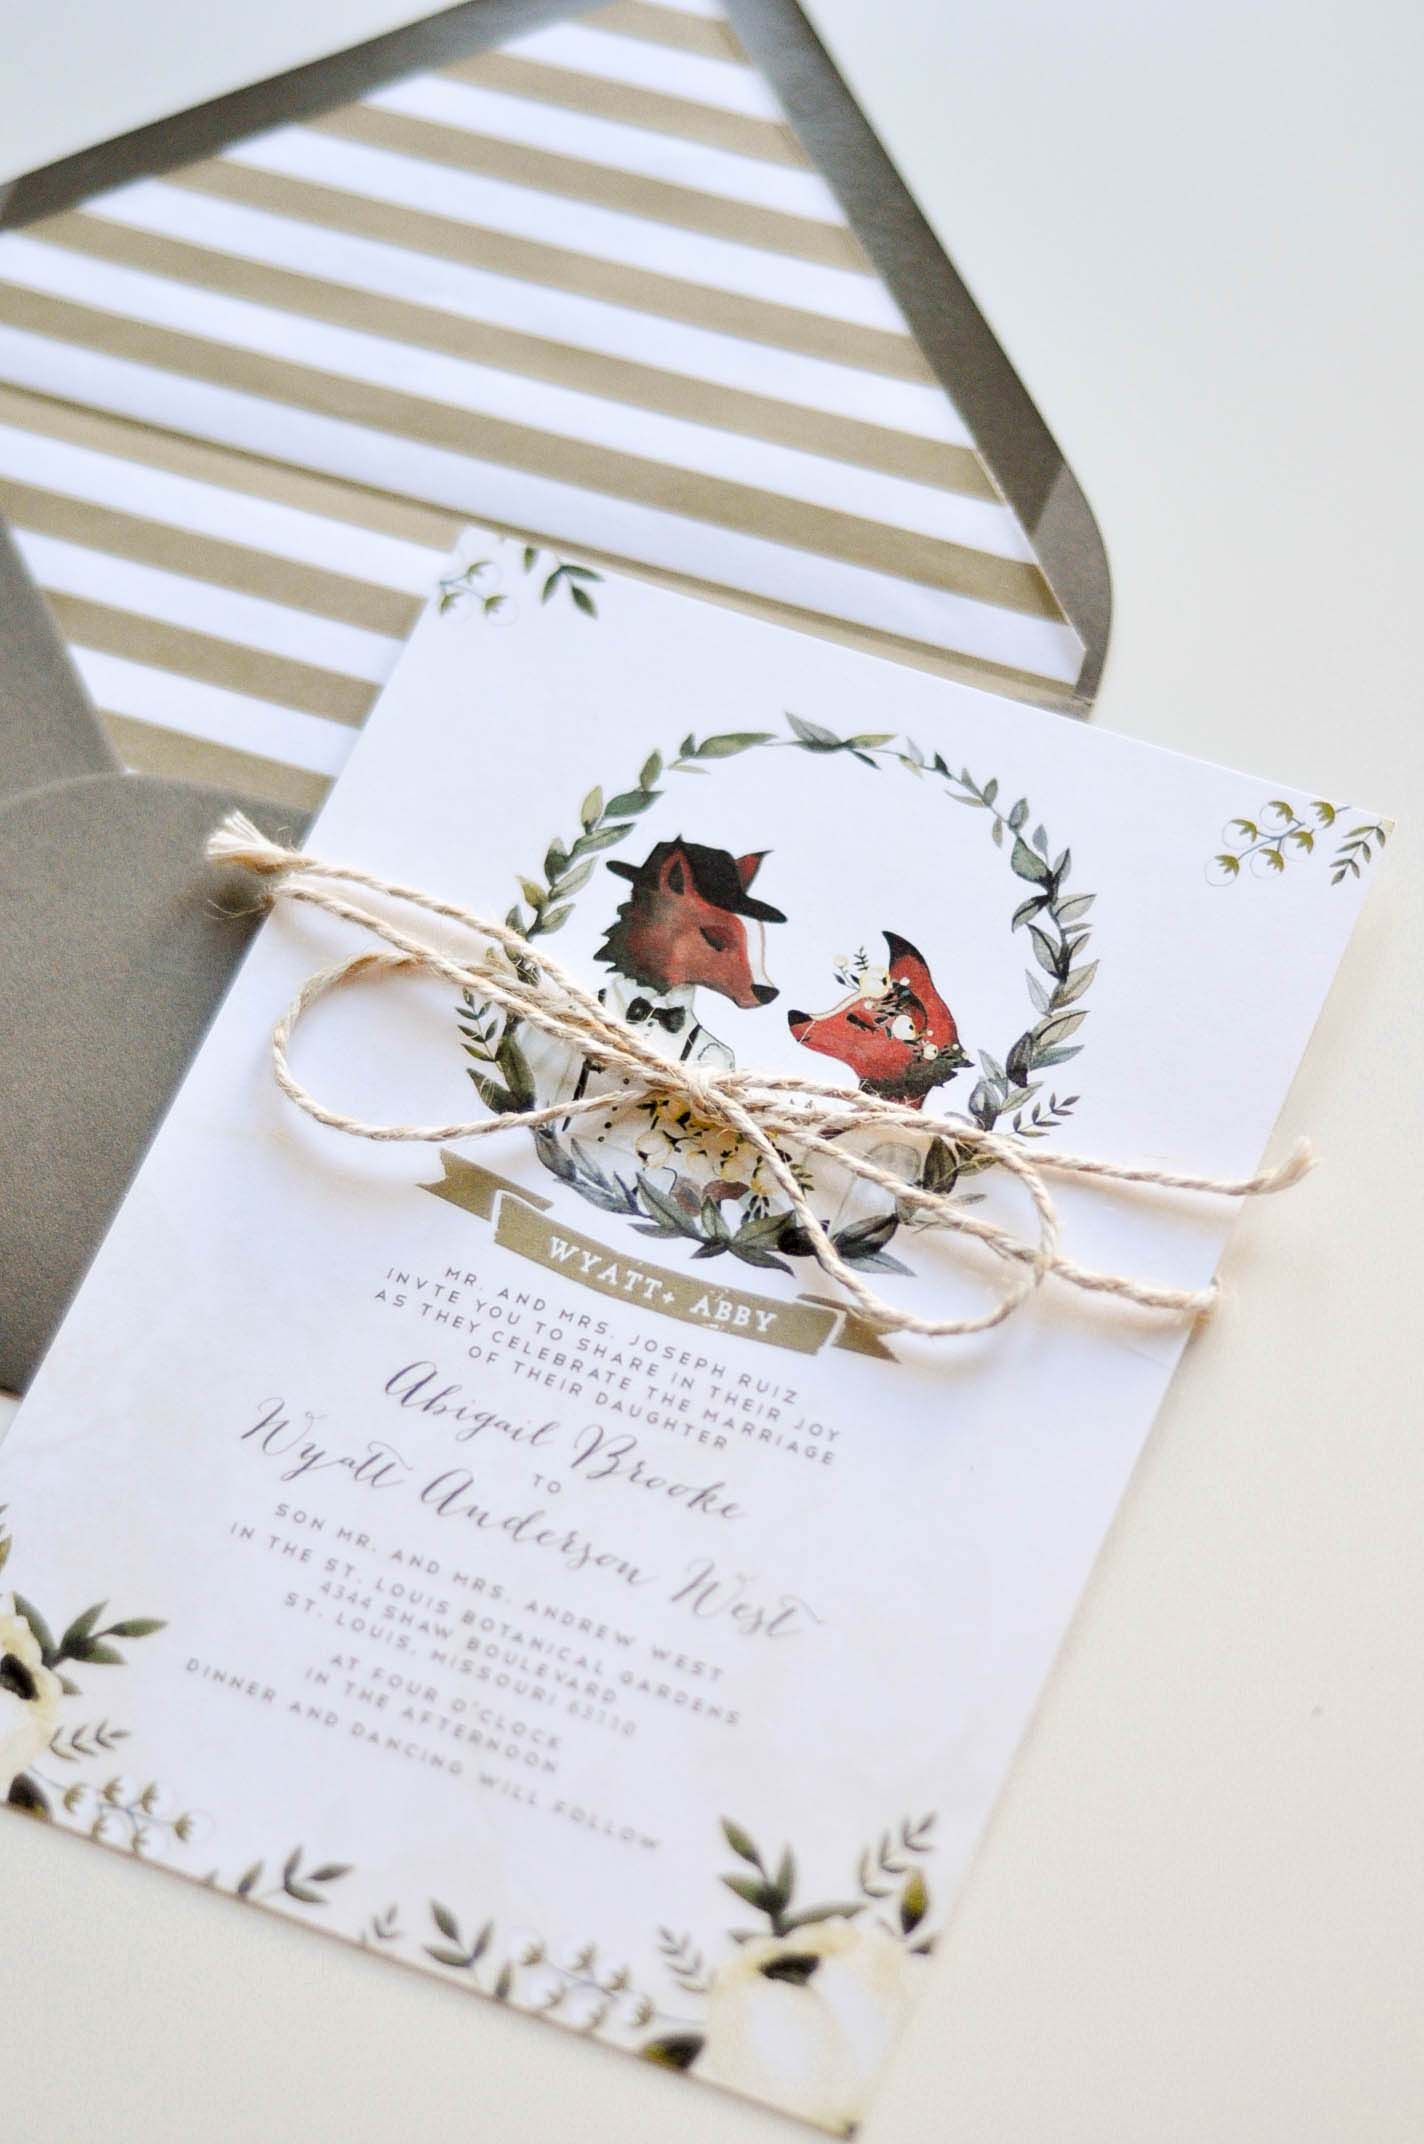 Fox Wedding Invitations Invitations Pinterest Fox Wedding